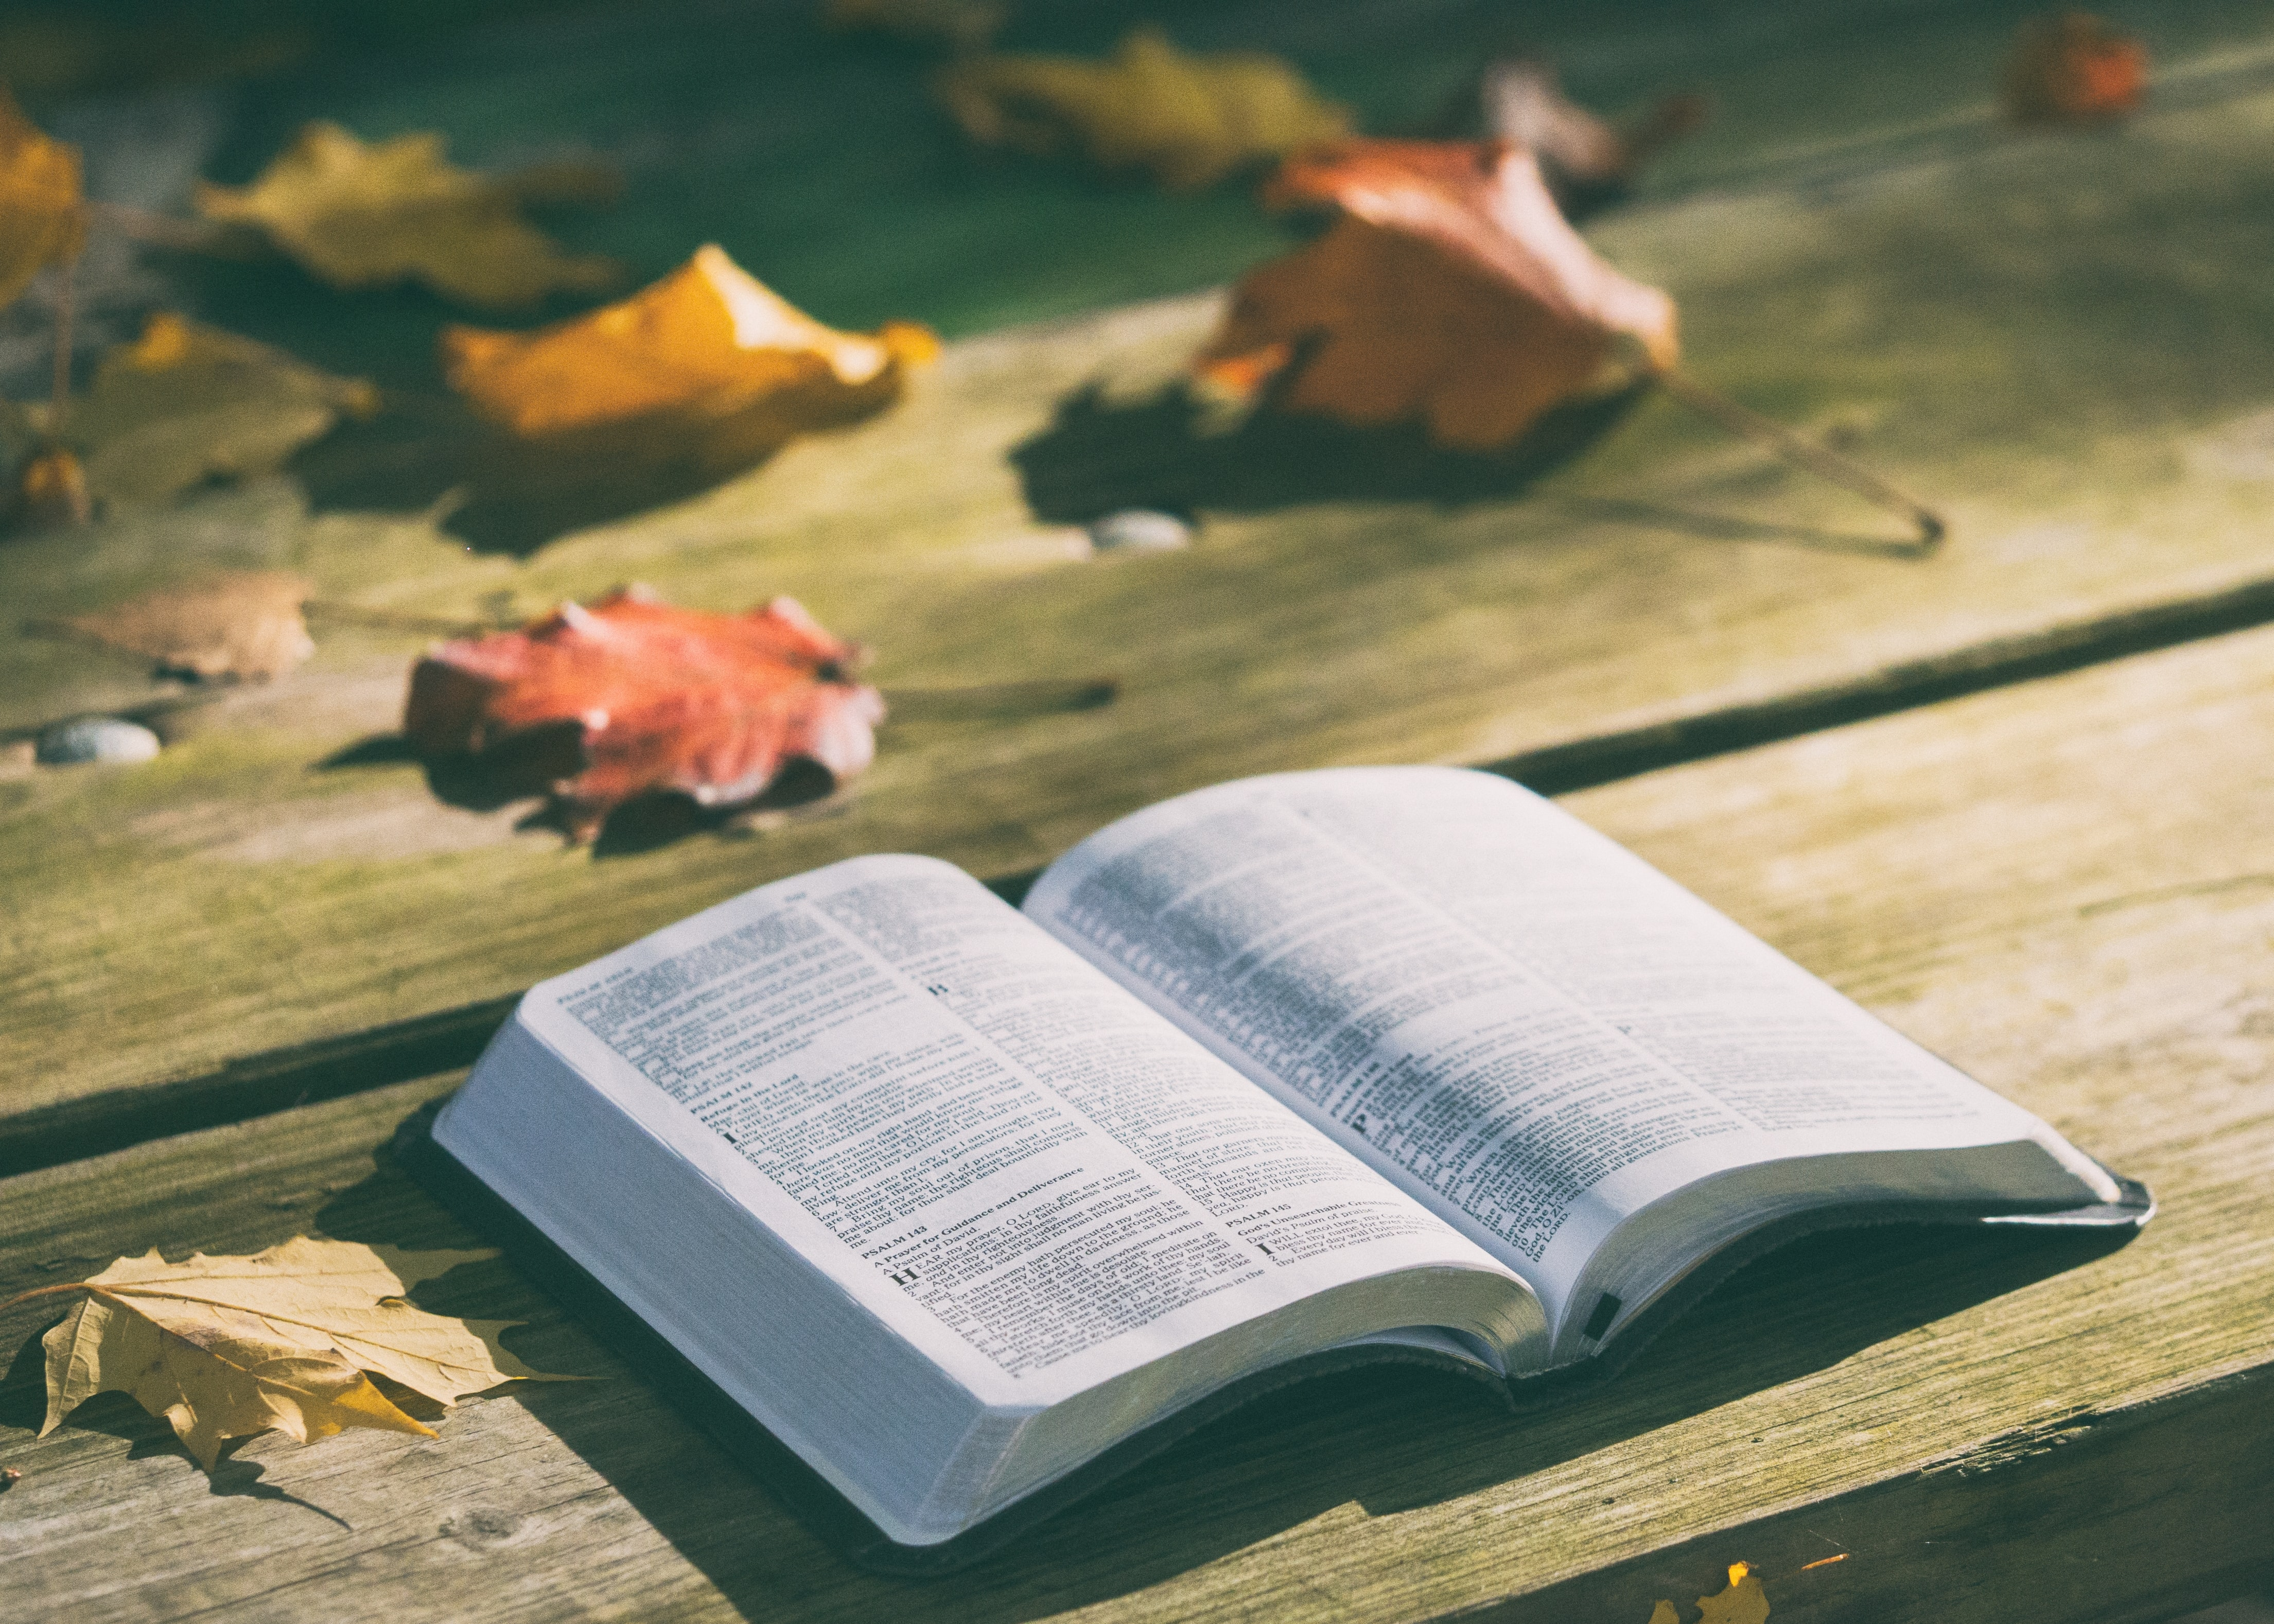 An open book on a wooden surface next to colorful autumn leaves